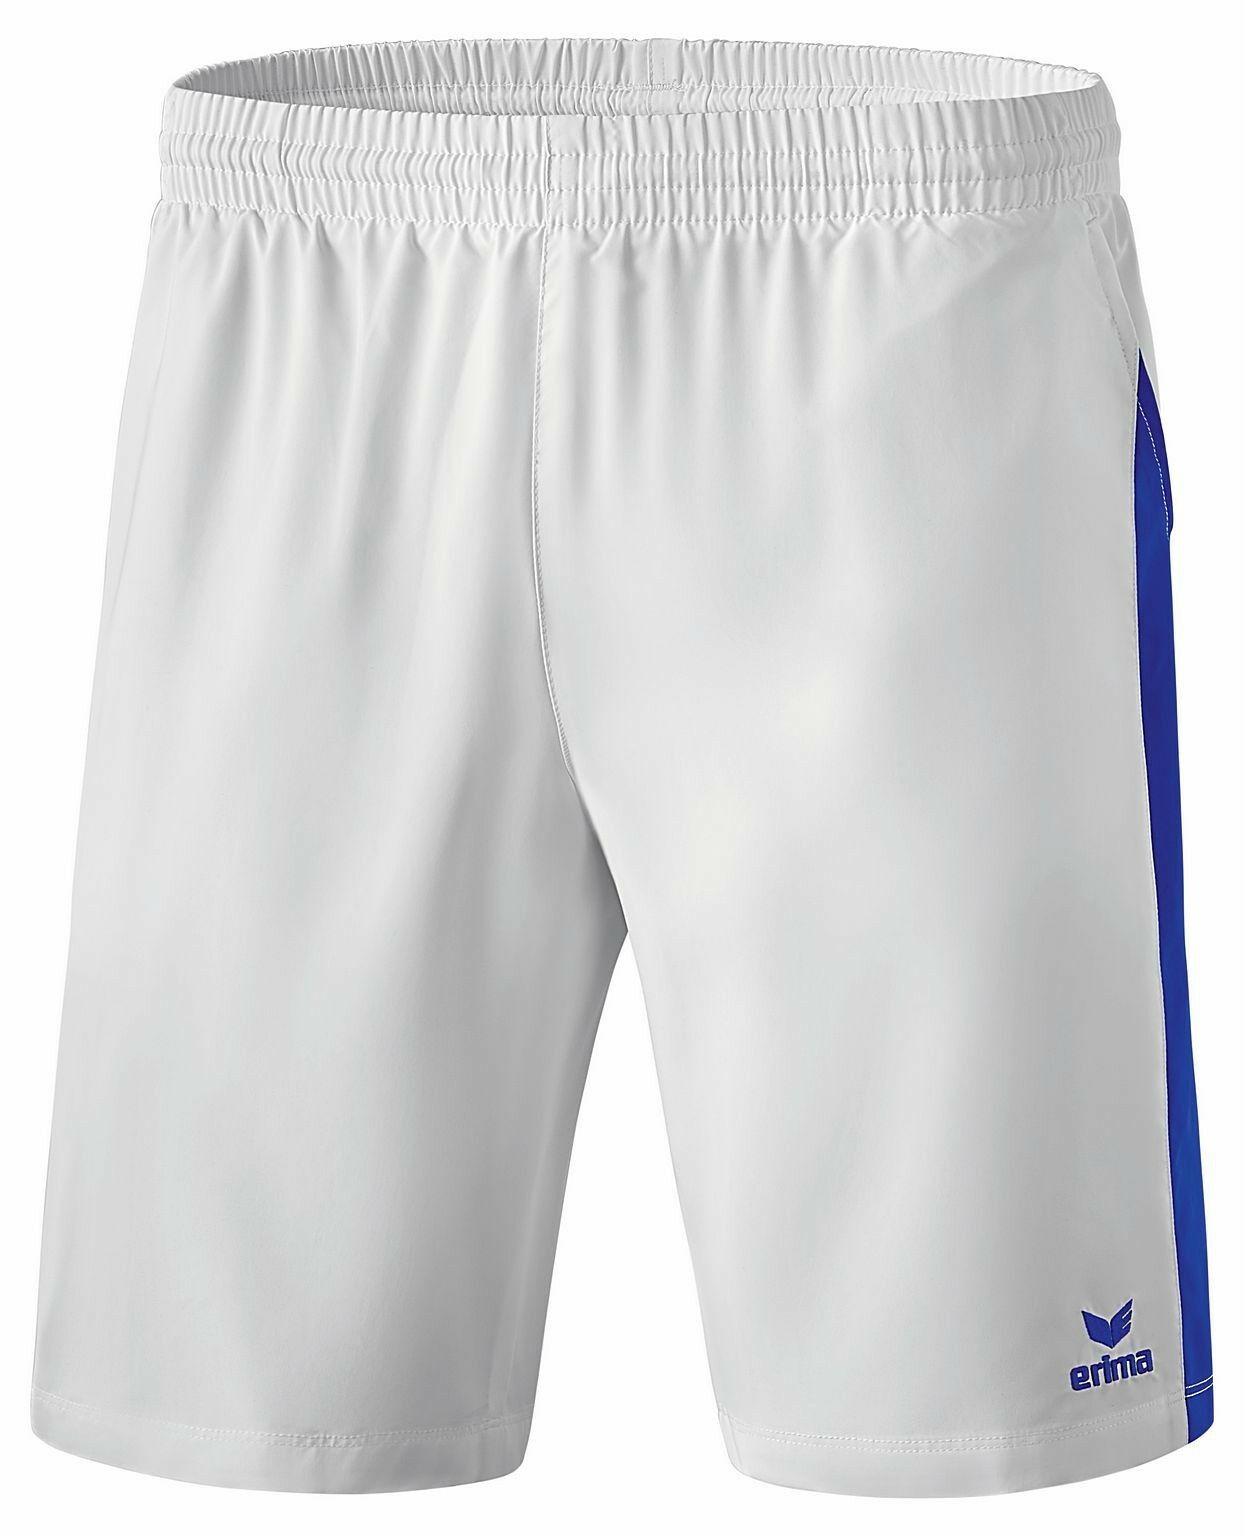 Erima Masters Short Men's White Mazarine bluee Short NEW